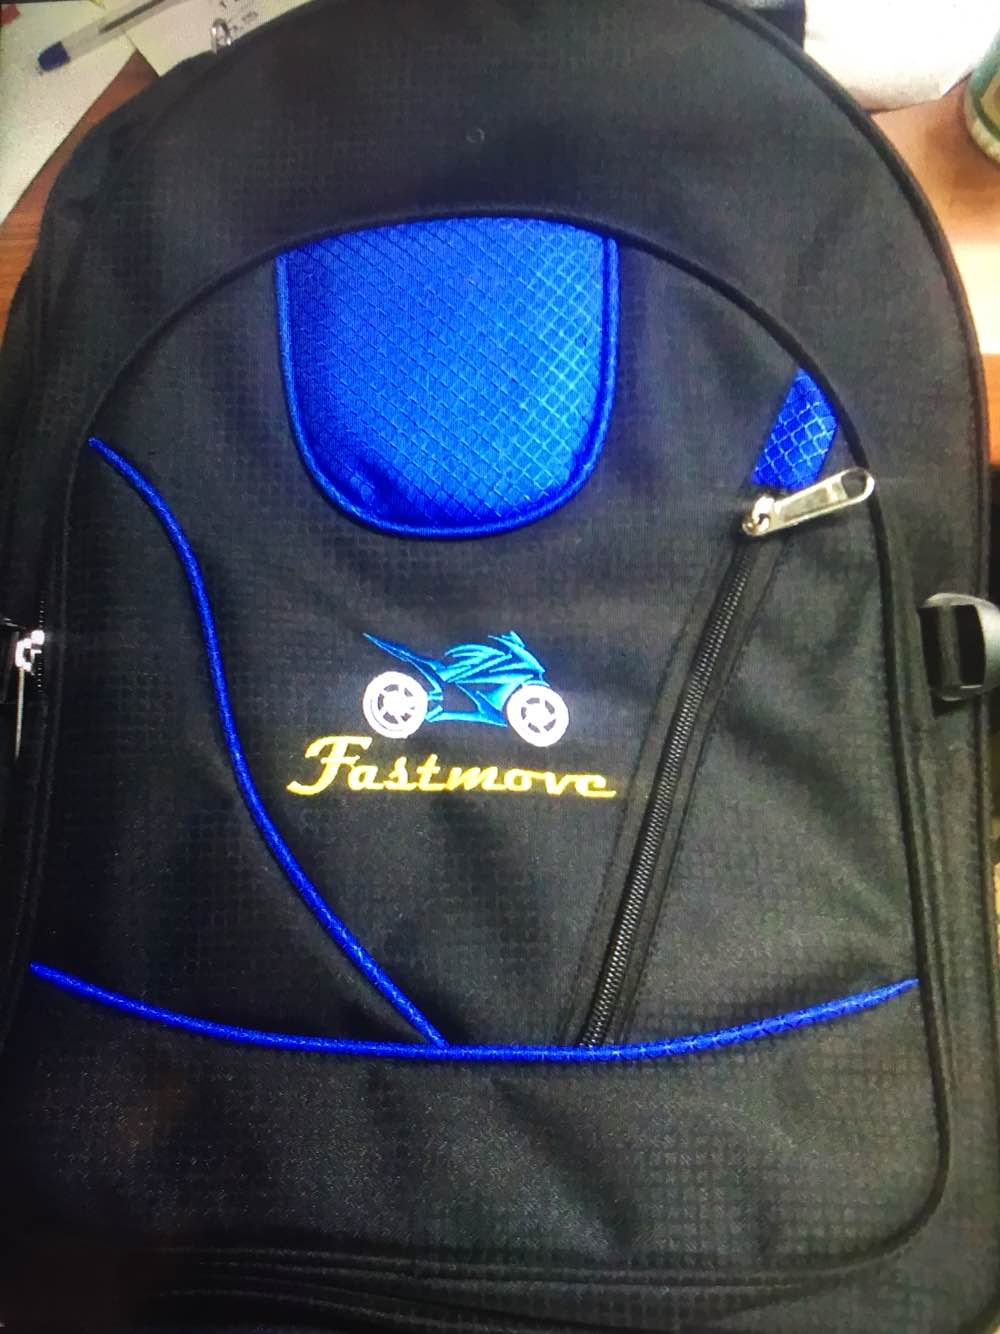 Travel Bags In Chennai Rate Is Rs 270.